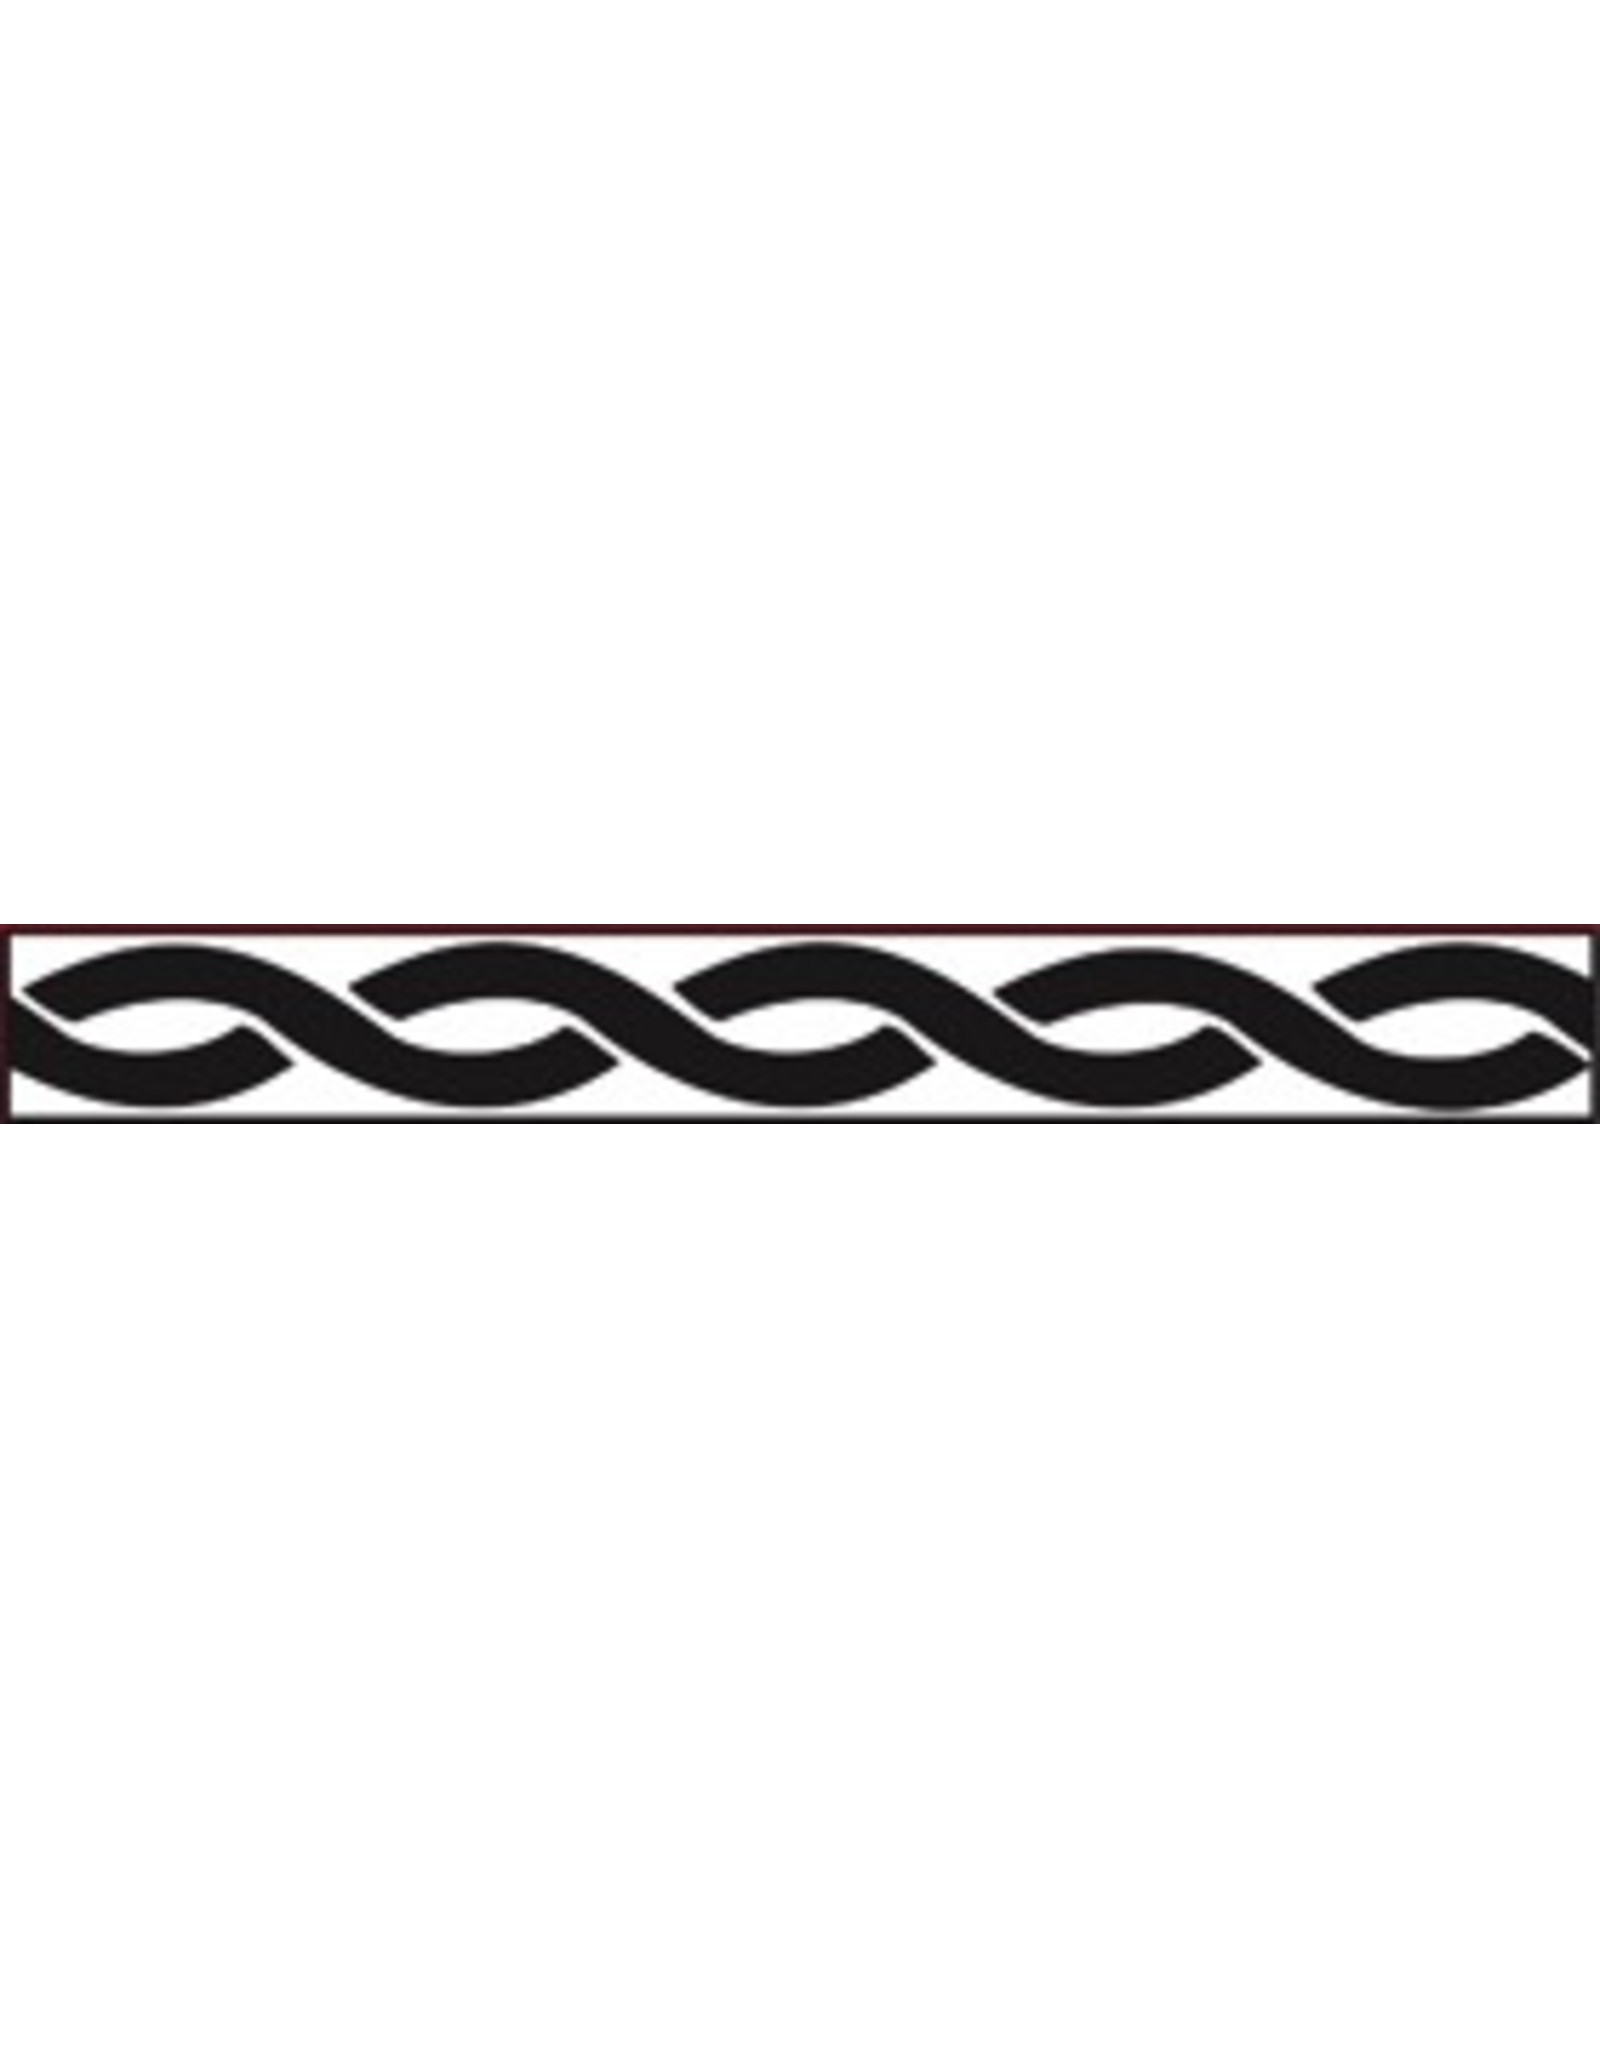 MKM tools twisted pattern roller